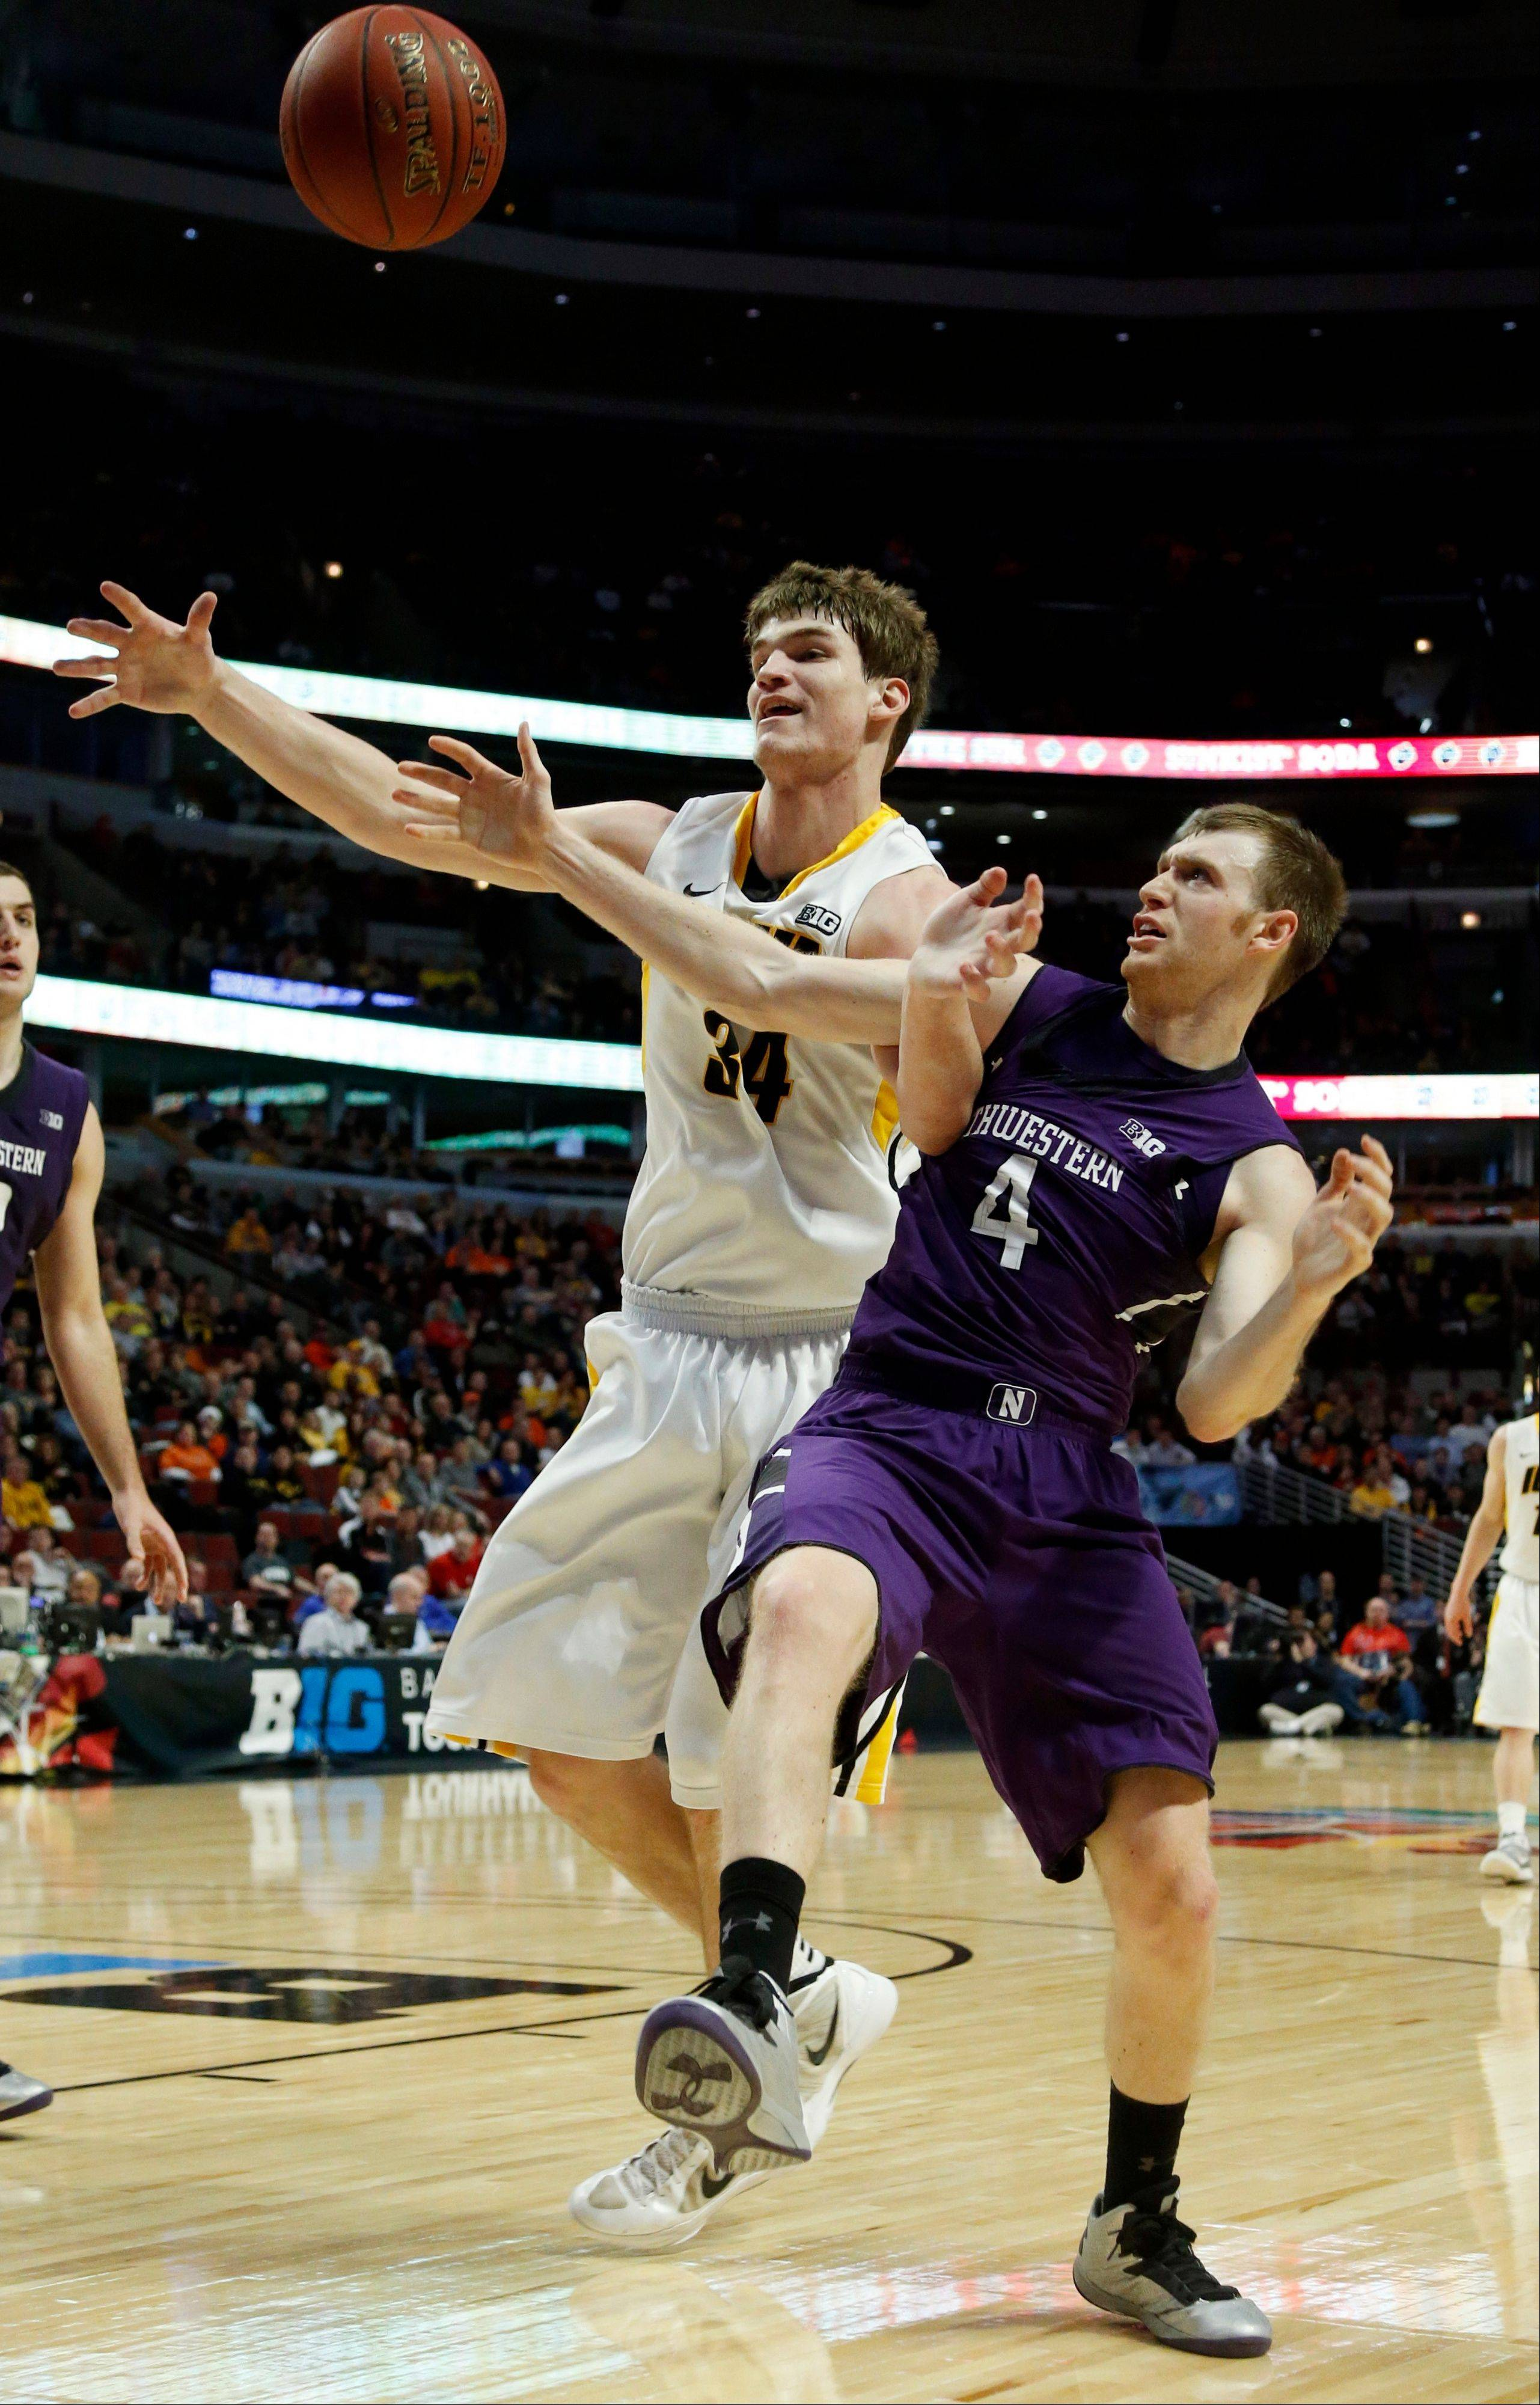 Iowa tops Northwestern 73-59 in Big 10 tournament